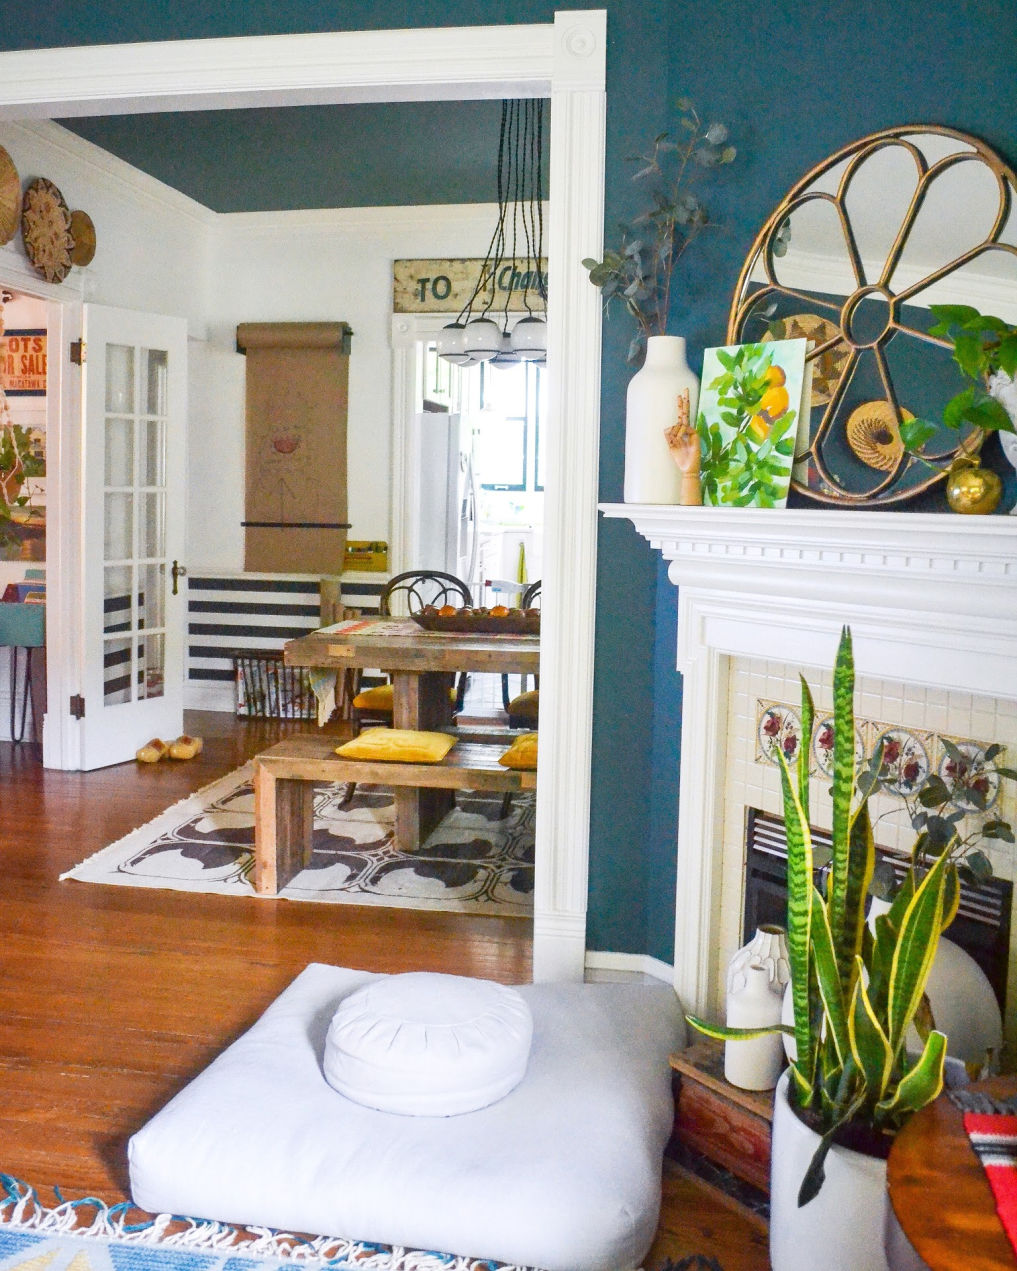 Love this old home with blue walls and eclectic decor #bluepaint #manteldecor #mantel #eclecticdecor #vintagedecor #bohodecor #hometour #diningroomdecor